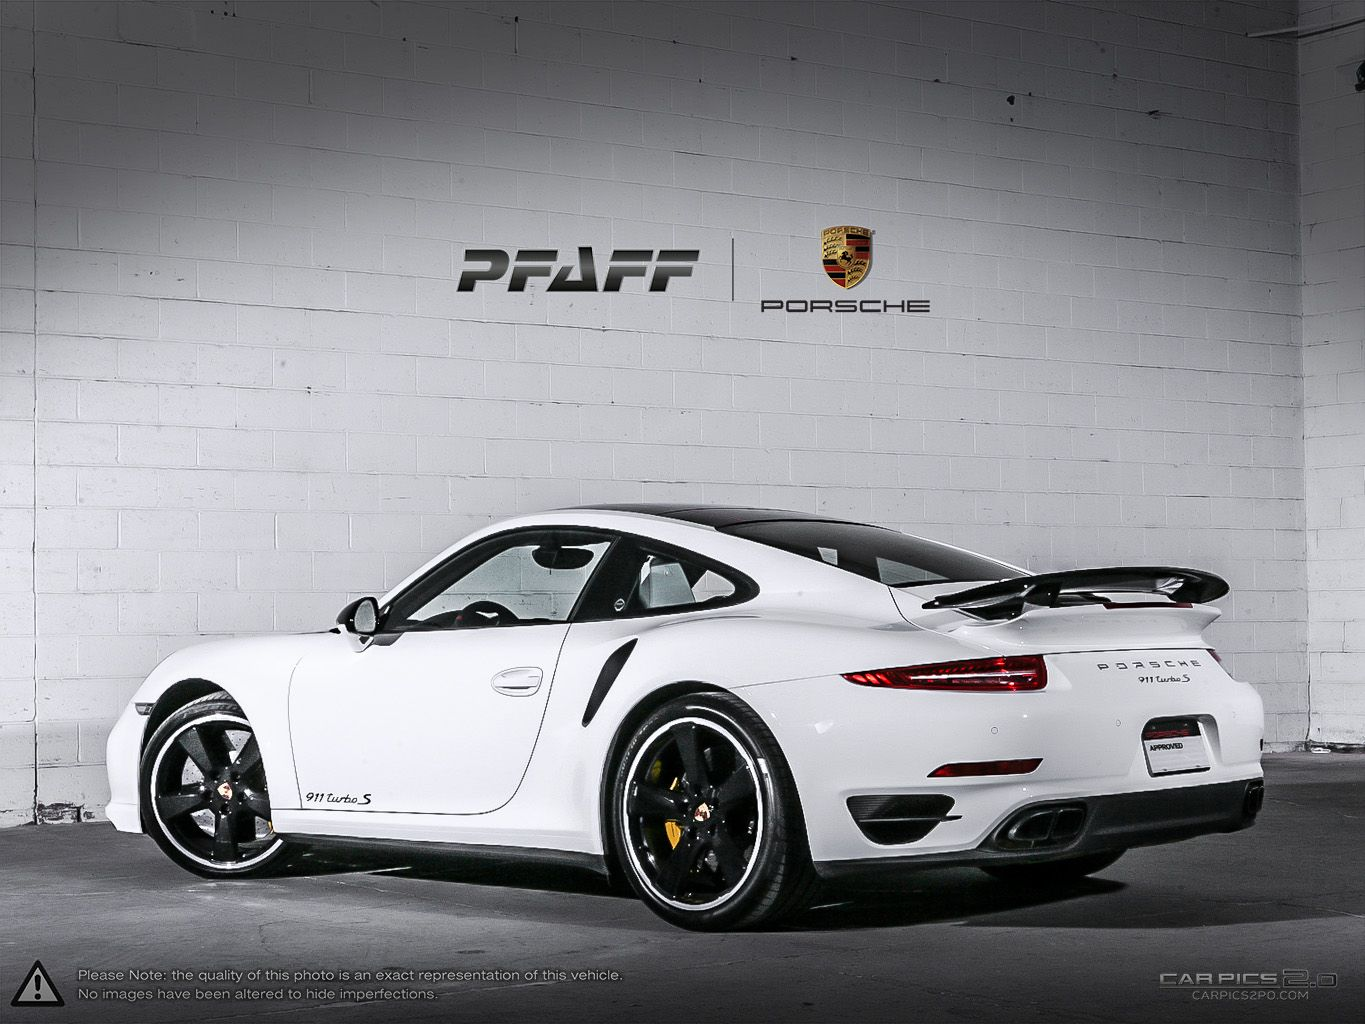 porsche 911 turbo s 1 founded - 911 Porsche Turbo